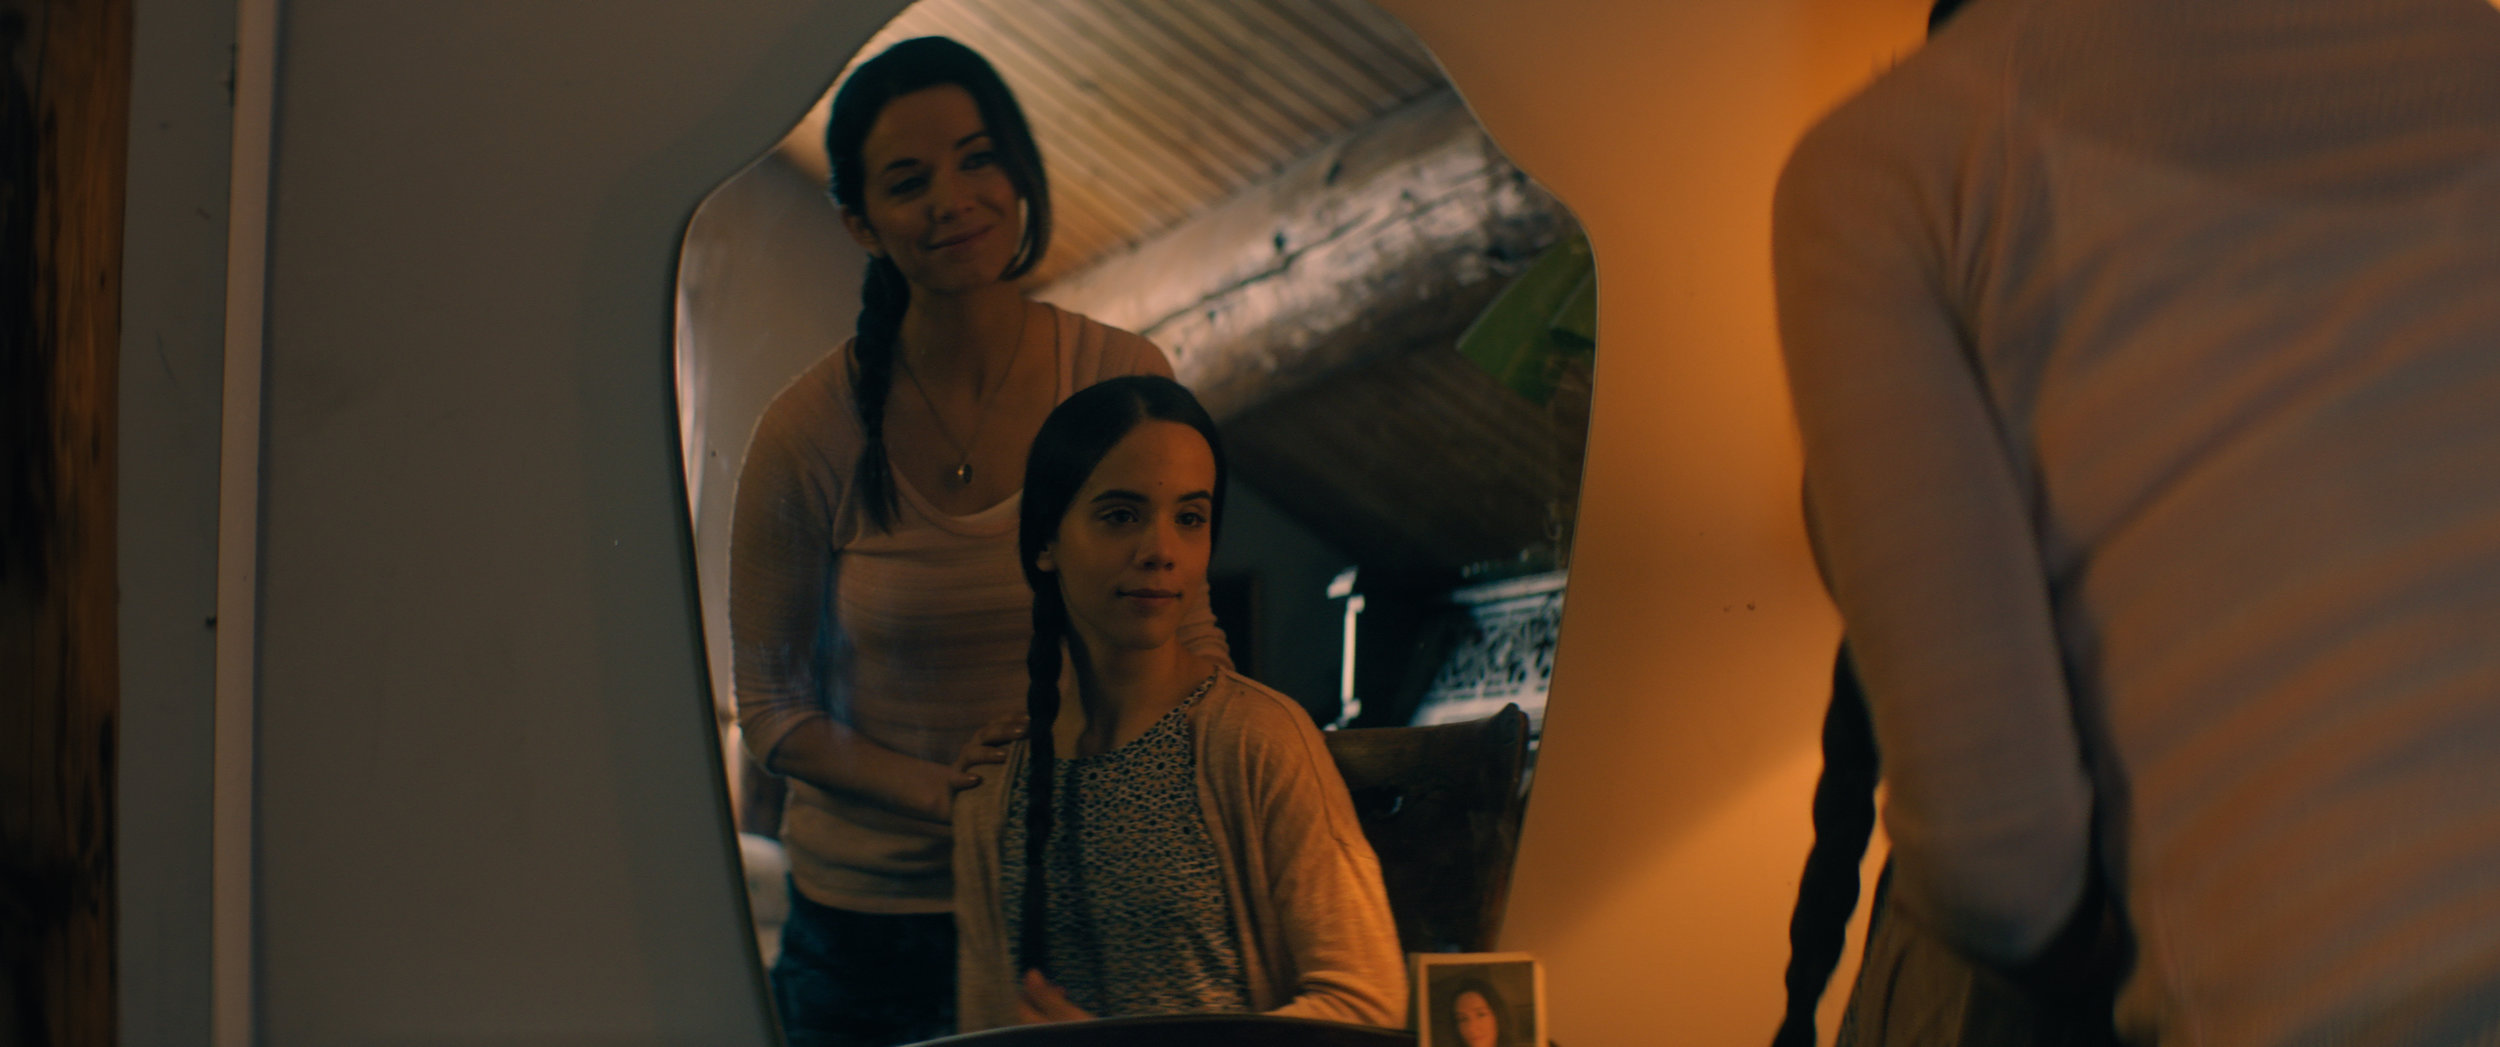 Michelle Morgan (Maria) and Sophia Lauchlin Hirt (Arielle) bond as Mother-Daughter in Ice Blue.